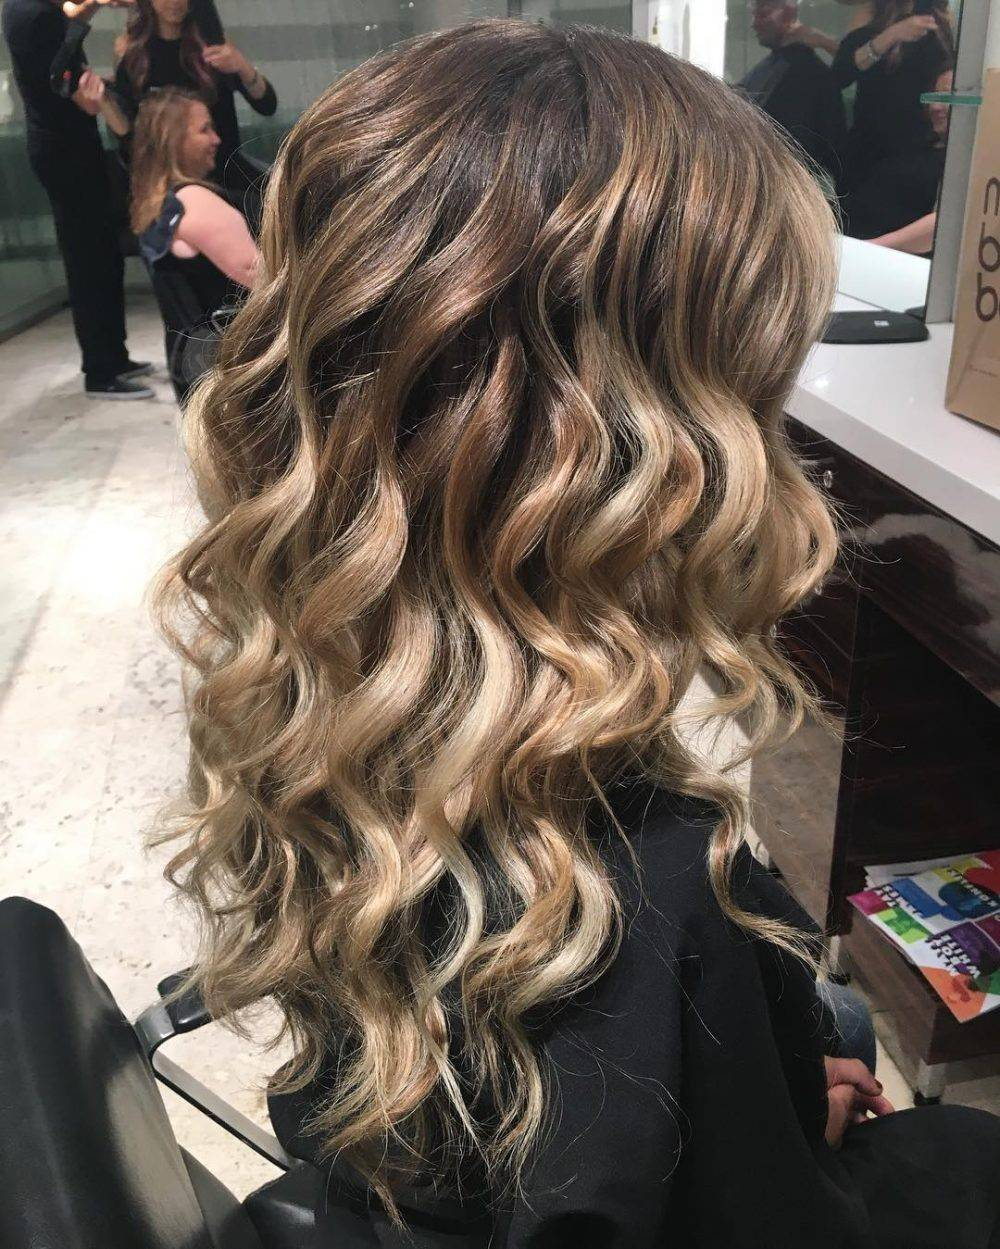 Ombré hair with waterfall curls